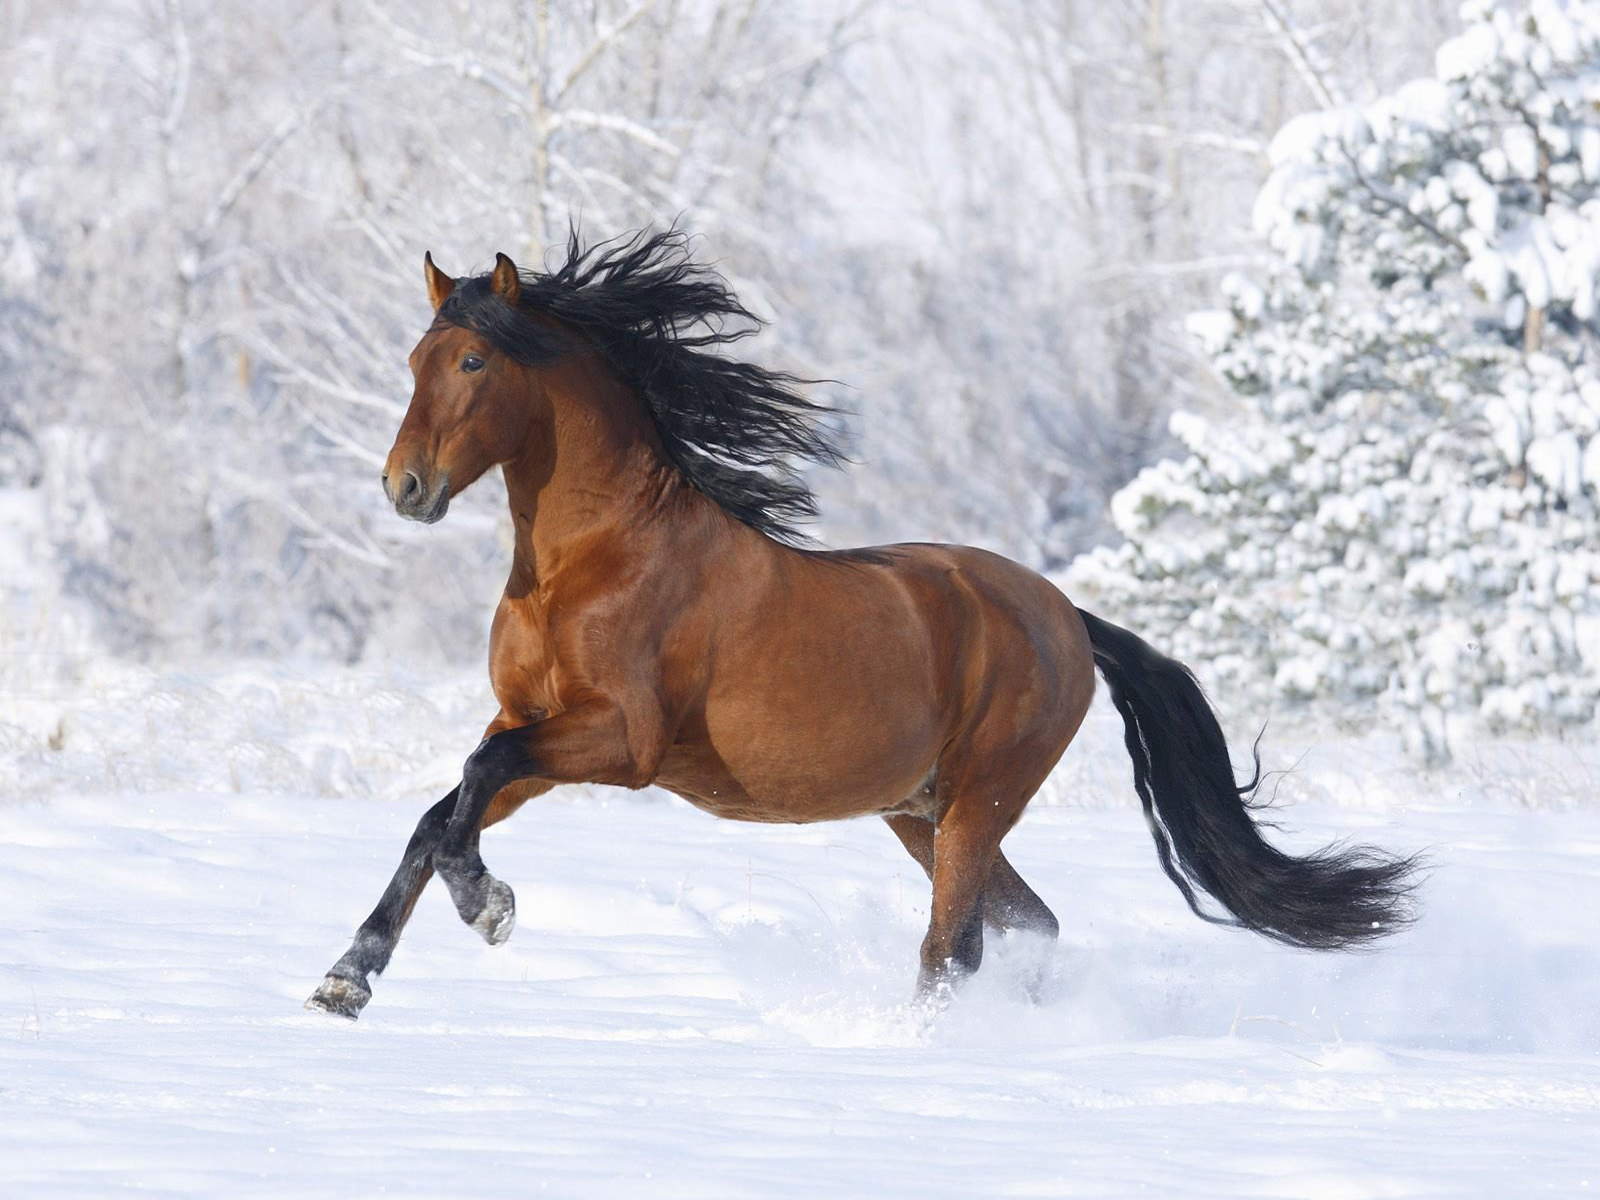 Beautiful Wallpaper Horse Stunning - horse-on-the-snow  Photograph_846227.jpg